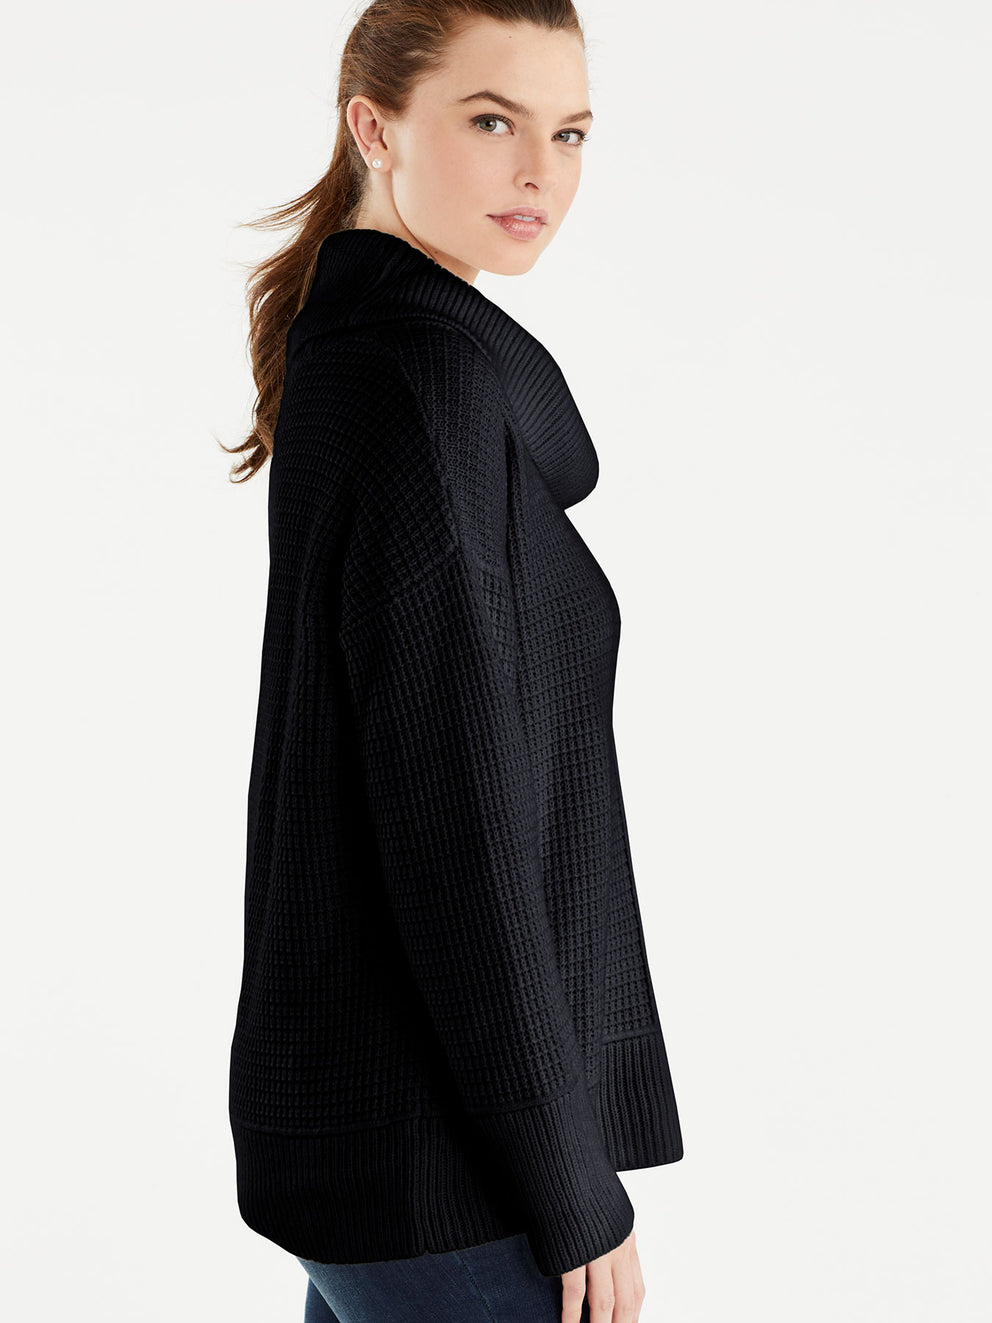 Stitch Front Turtleneck Color Black